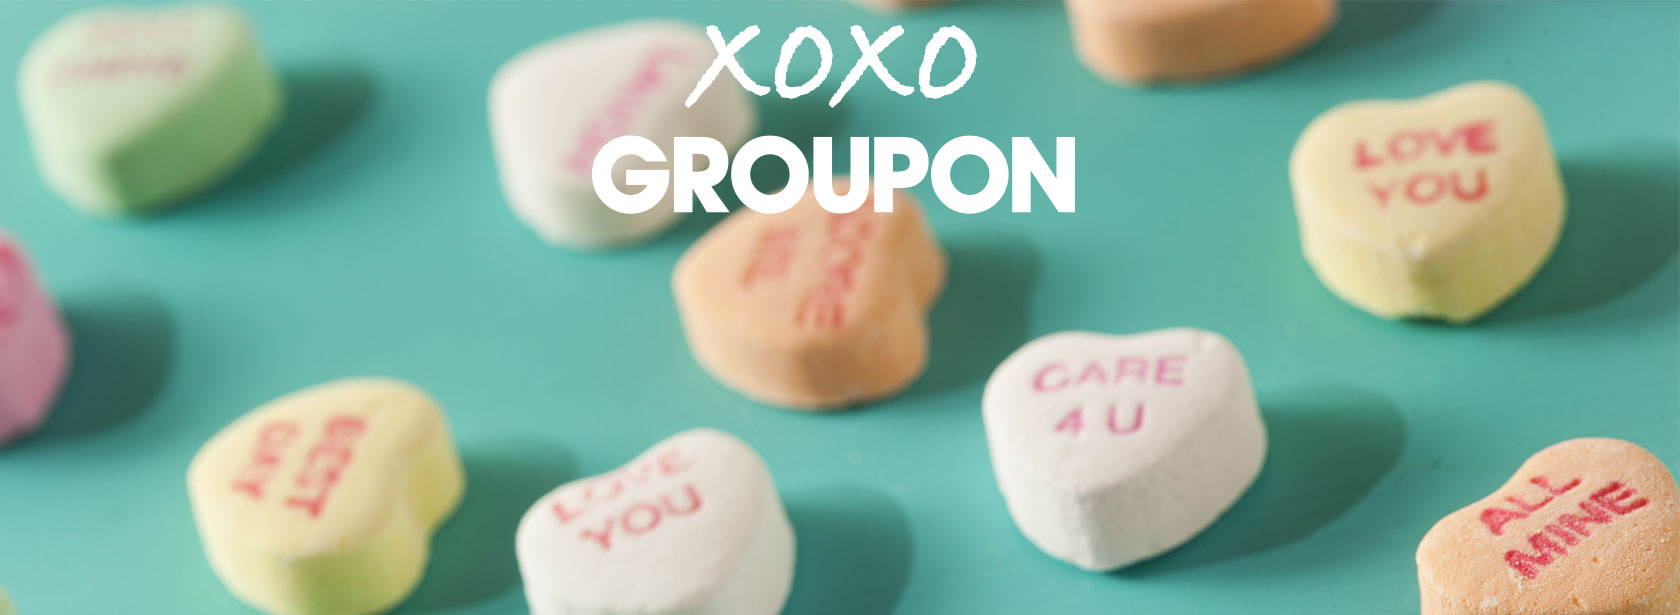 Groupon valentines day